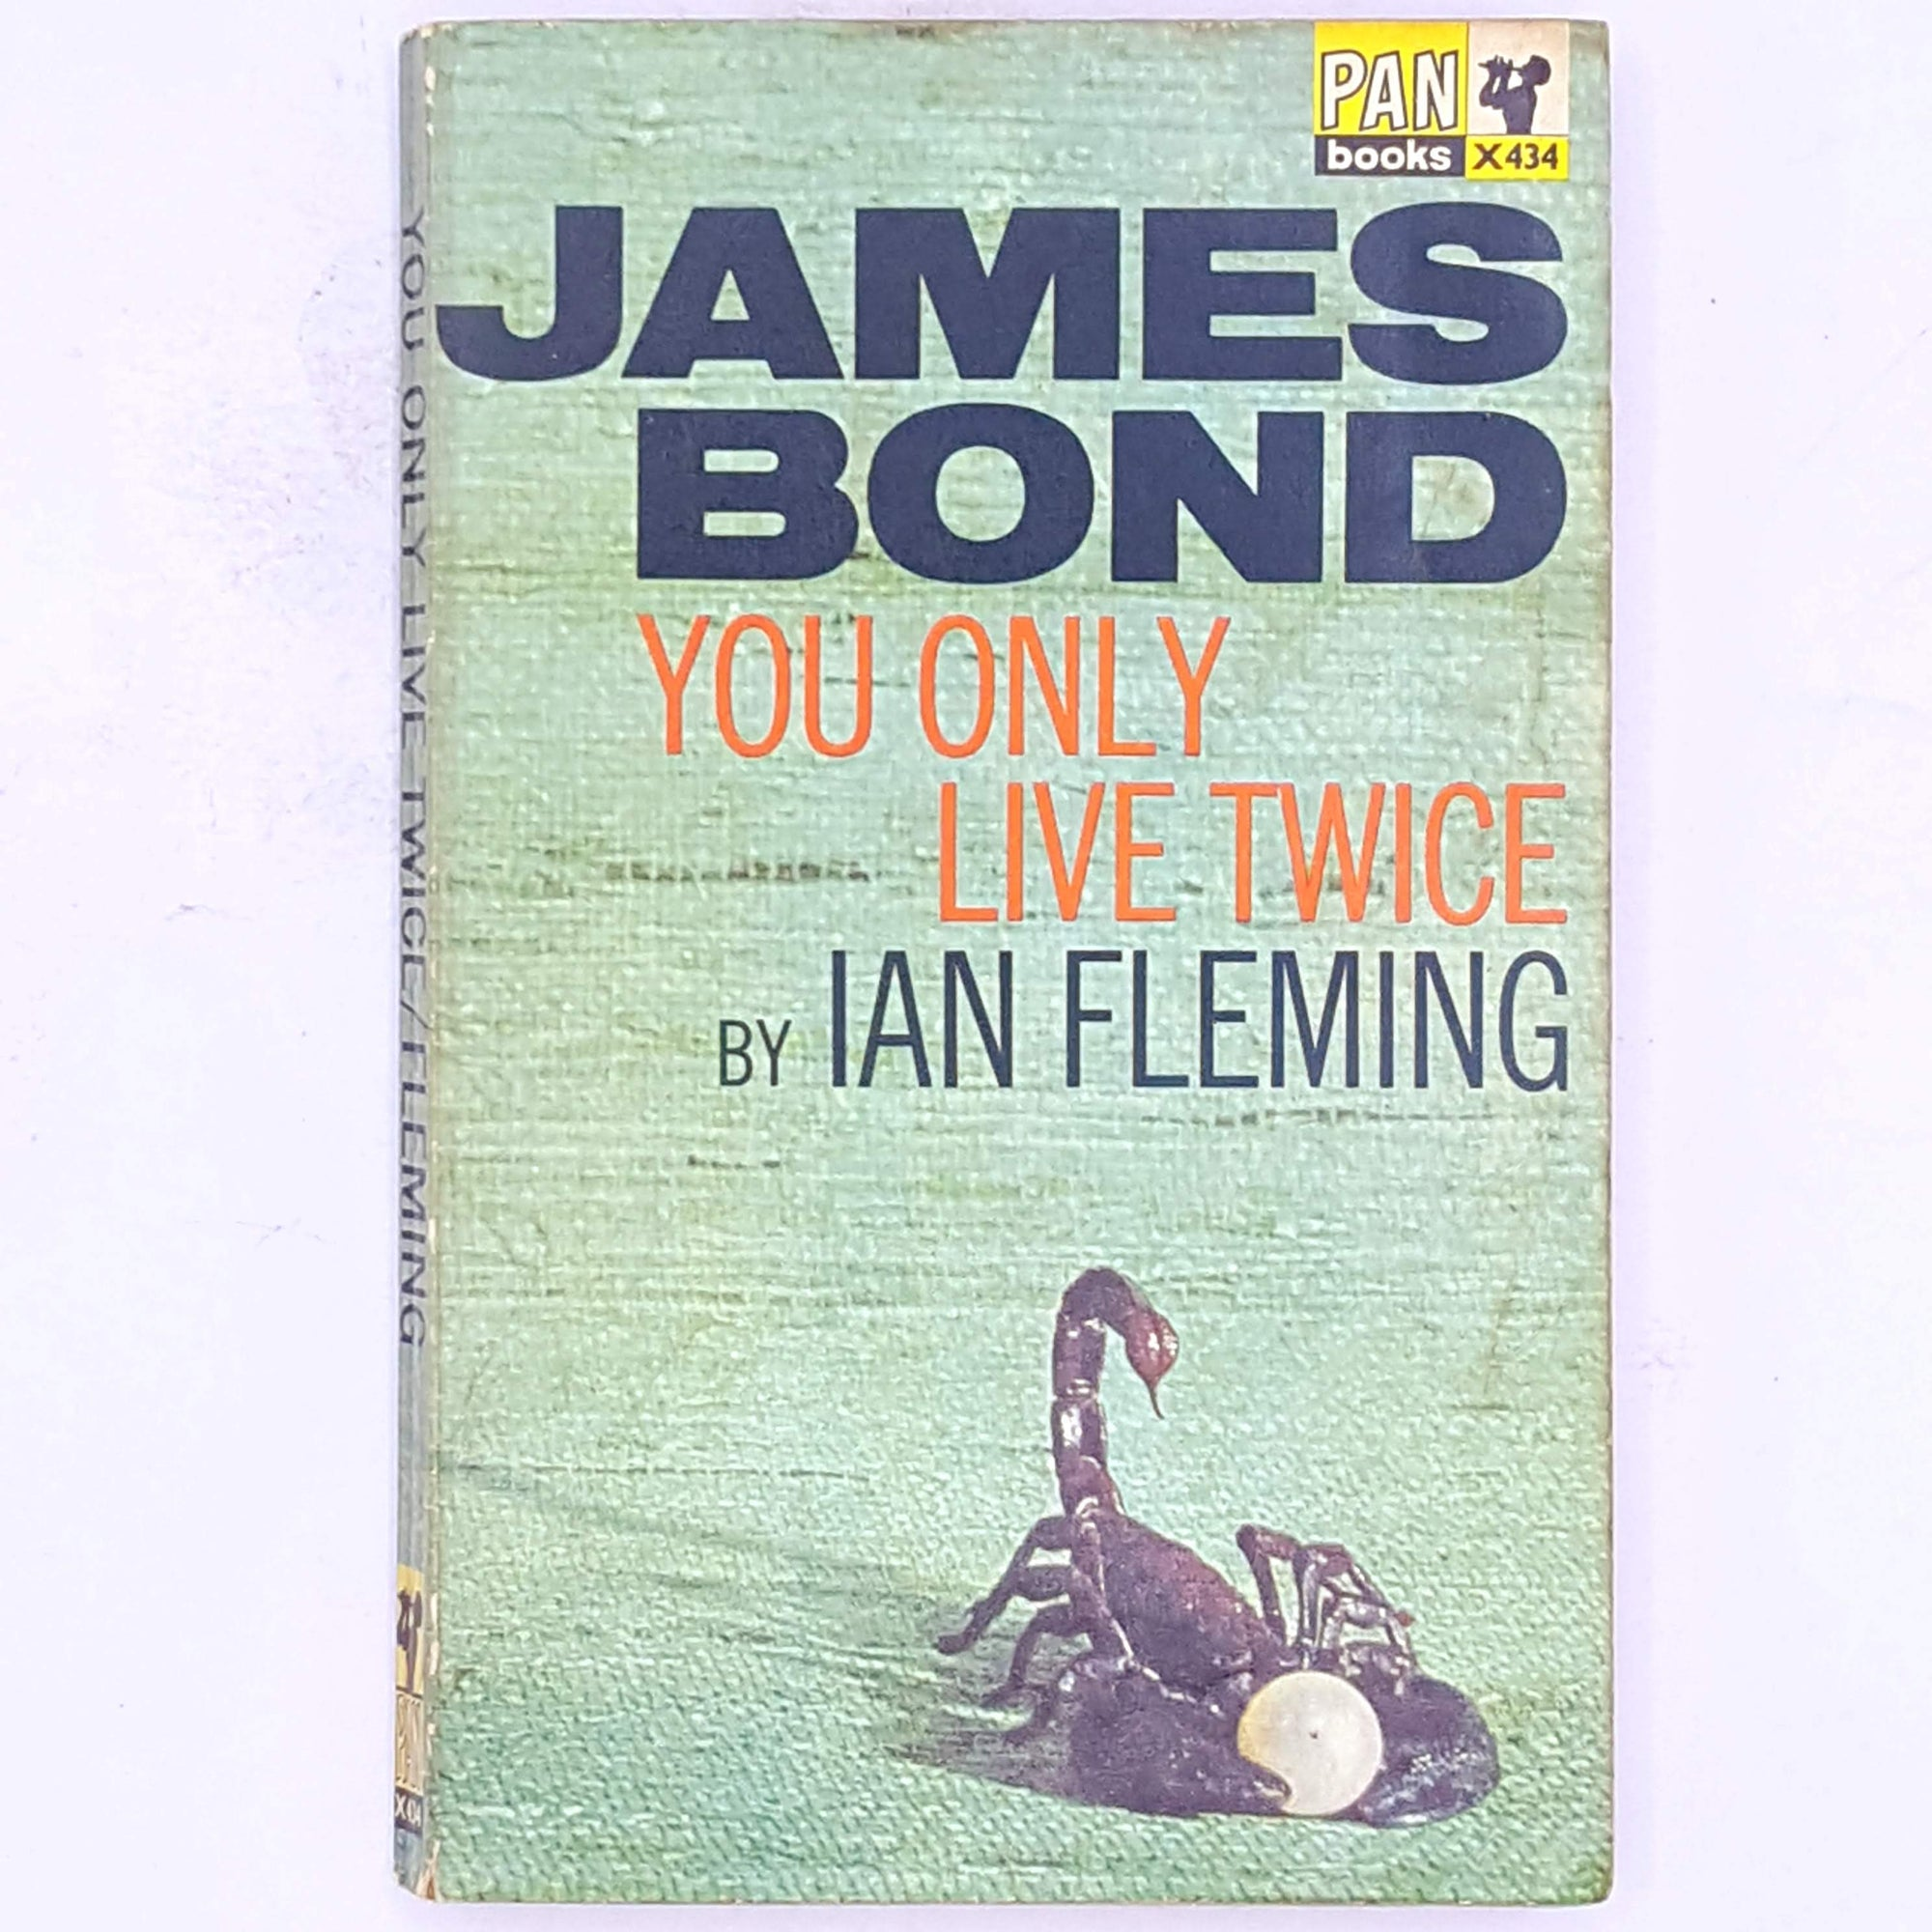 you-only-live-twice-country-house-library-old-classic-books-patterned-British-secret-agent-vintage-james-bond-thrift-007-spy-crime-mystery-thriller-secret-service-ian-fleming-antique-decorative-